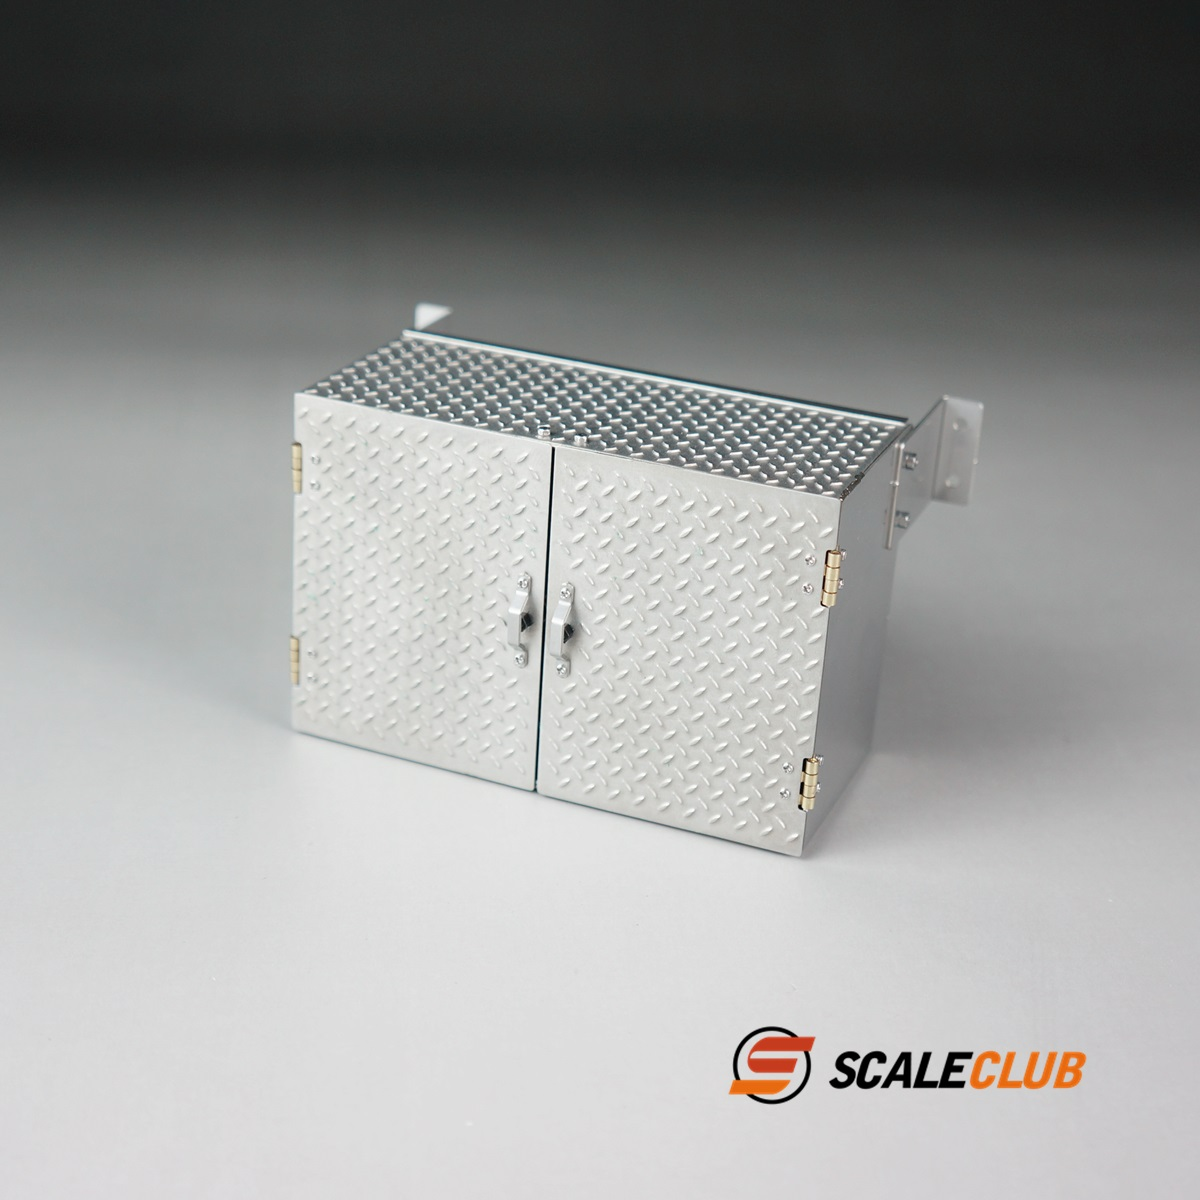 SCALECLUB  1/14 Universal  90 mm Toolbox with Anti-skid Stripe on Metal Belt